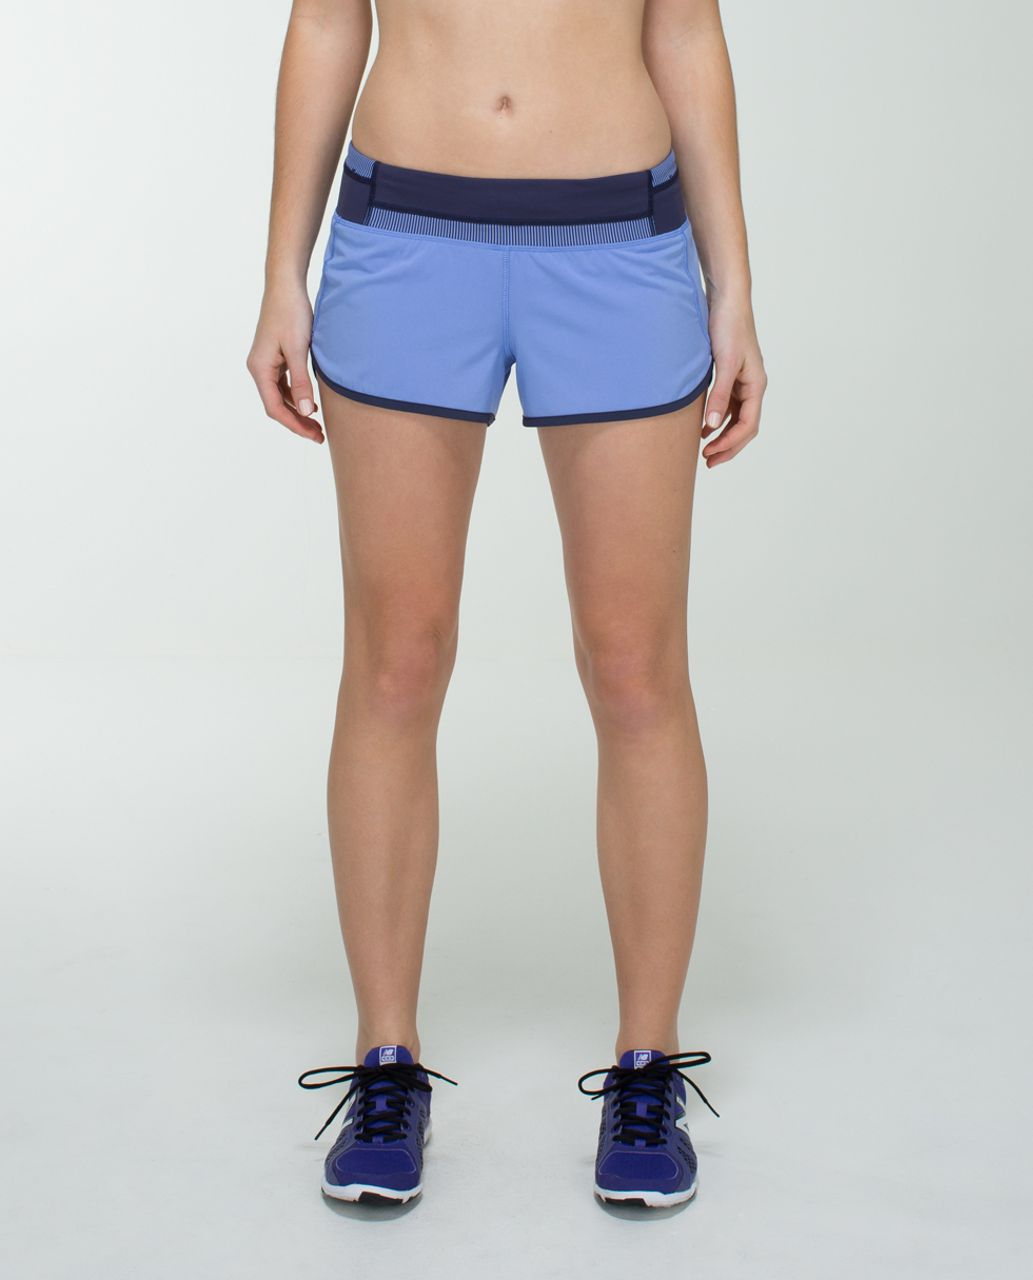 Lululemon Run:  Speed Short *4-way Stretch - Lullaby / Quilt Spring 14-22 / Cadet Blue